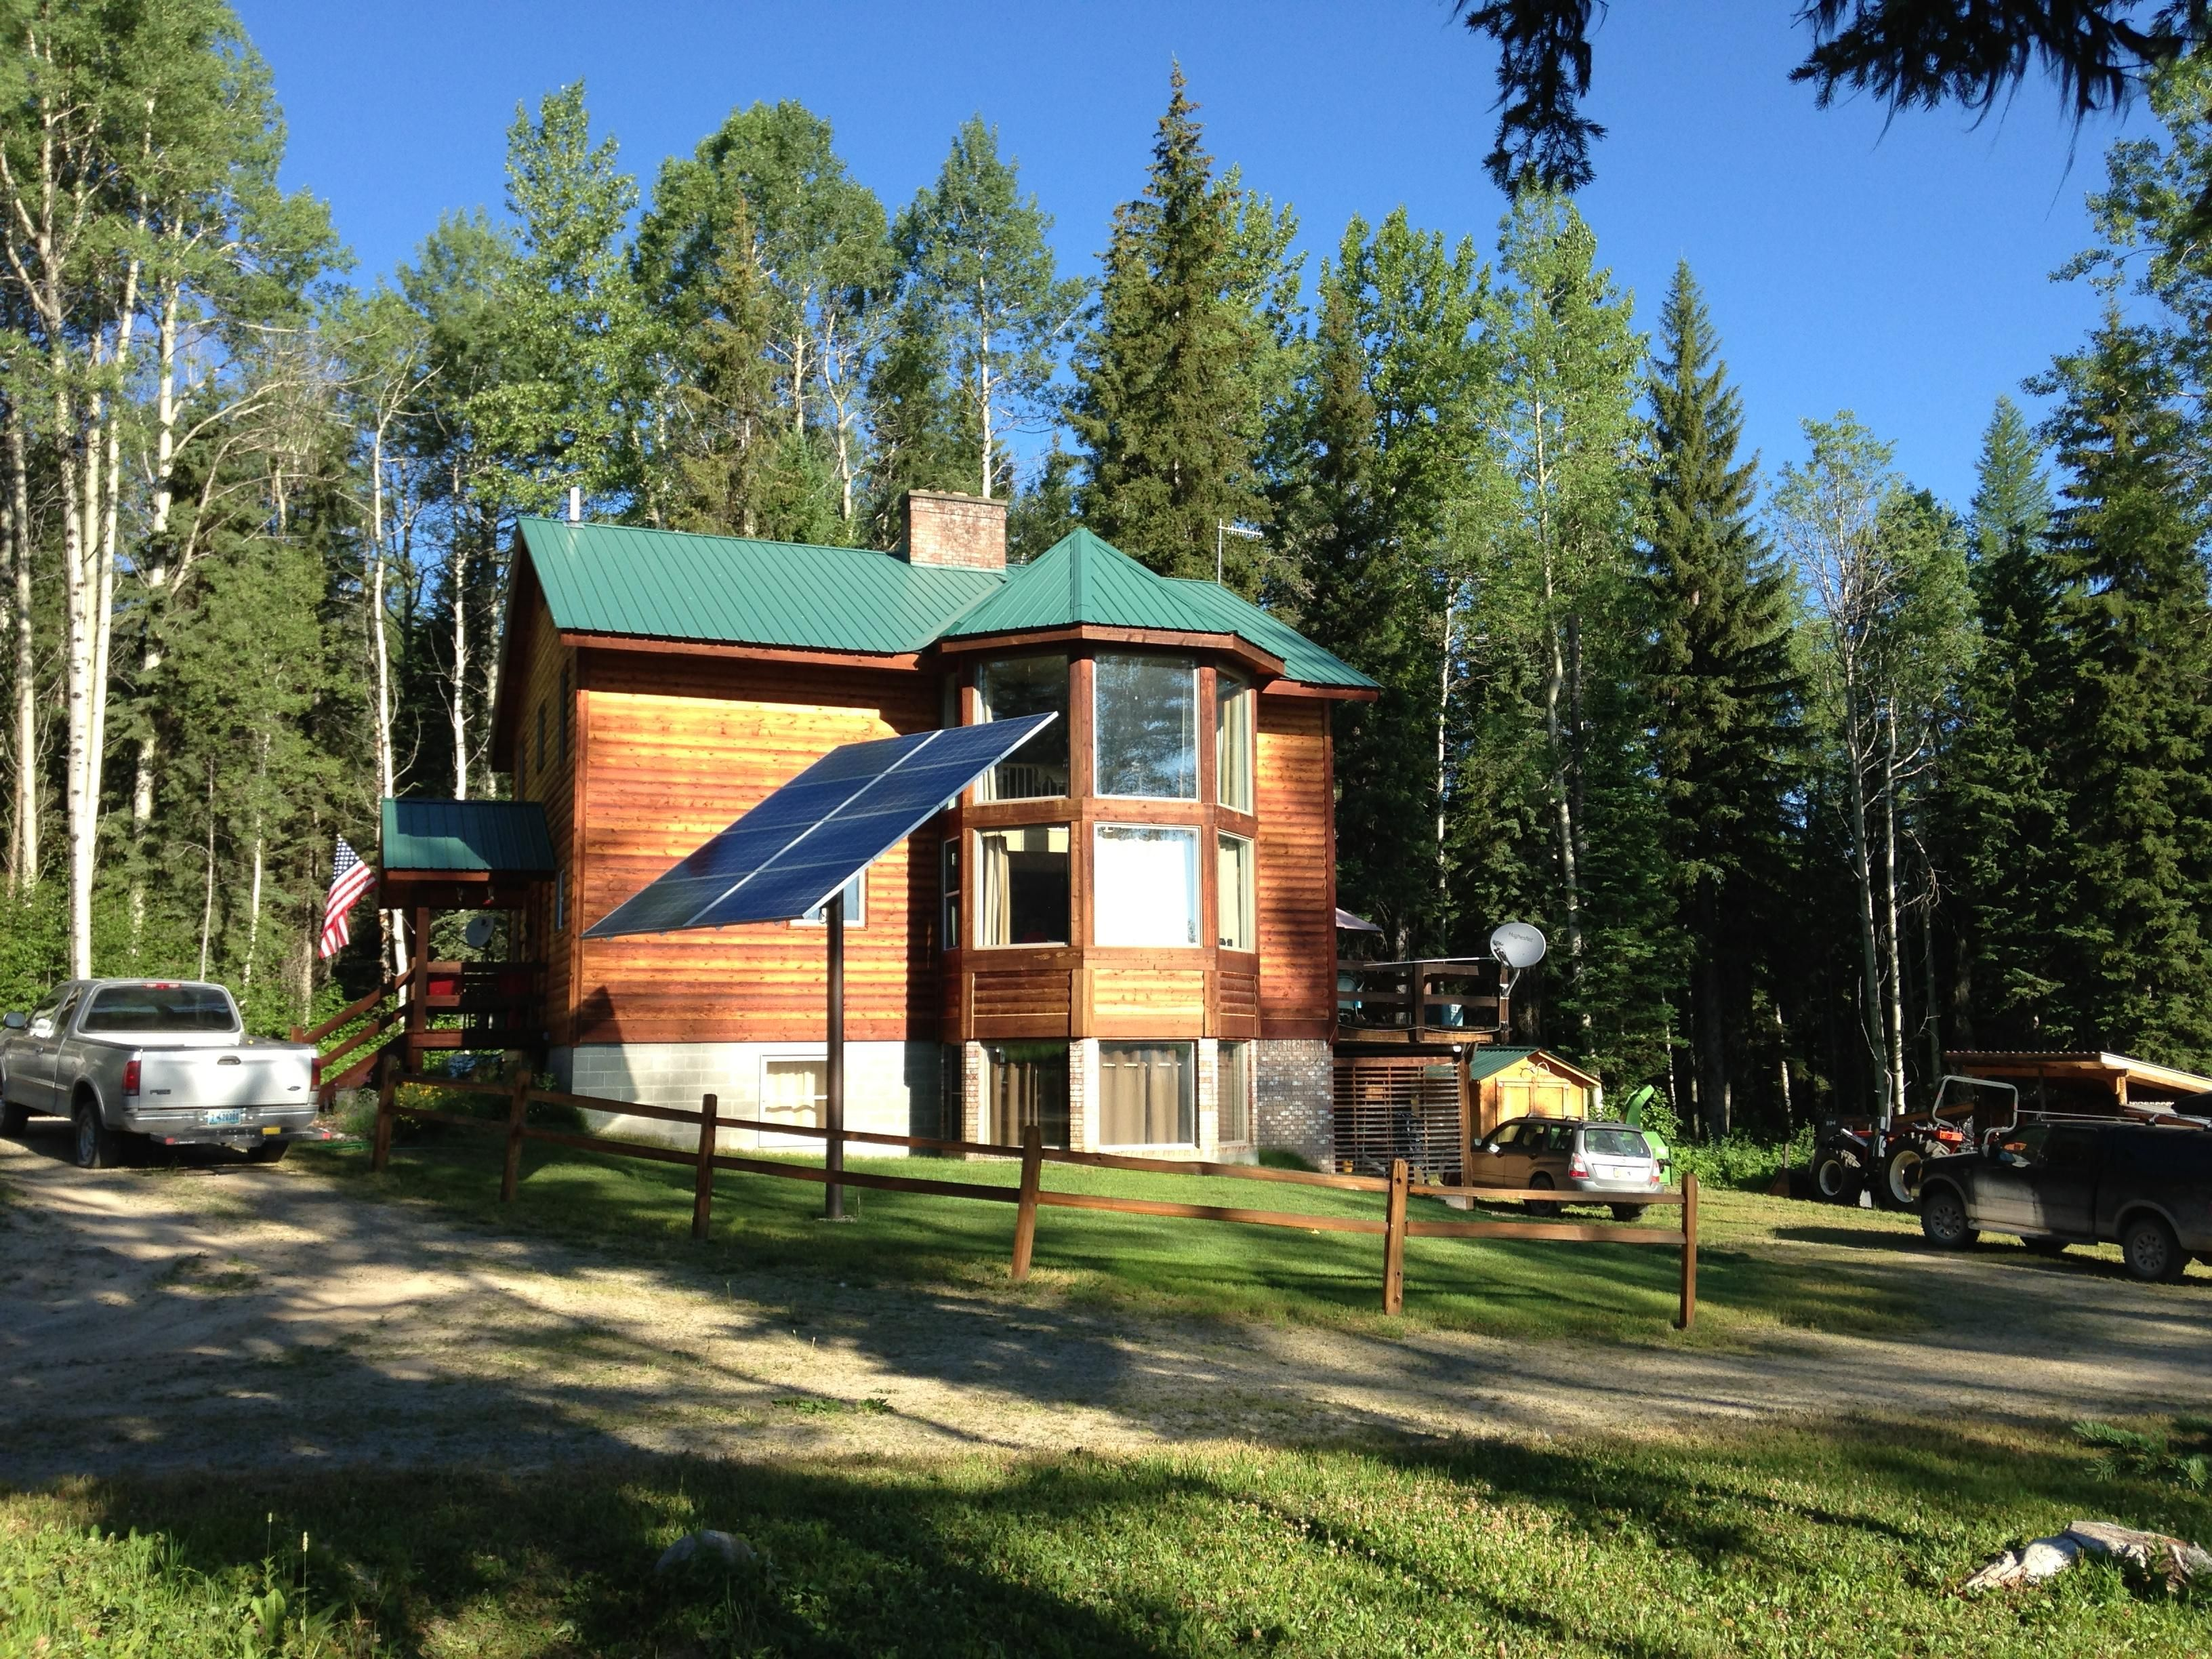 rentals montana mt glacier baker vacation property cabin original rim rental cabins in redawning